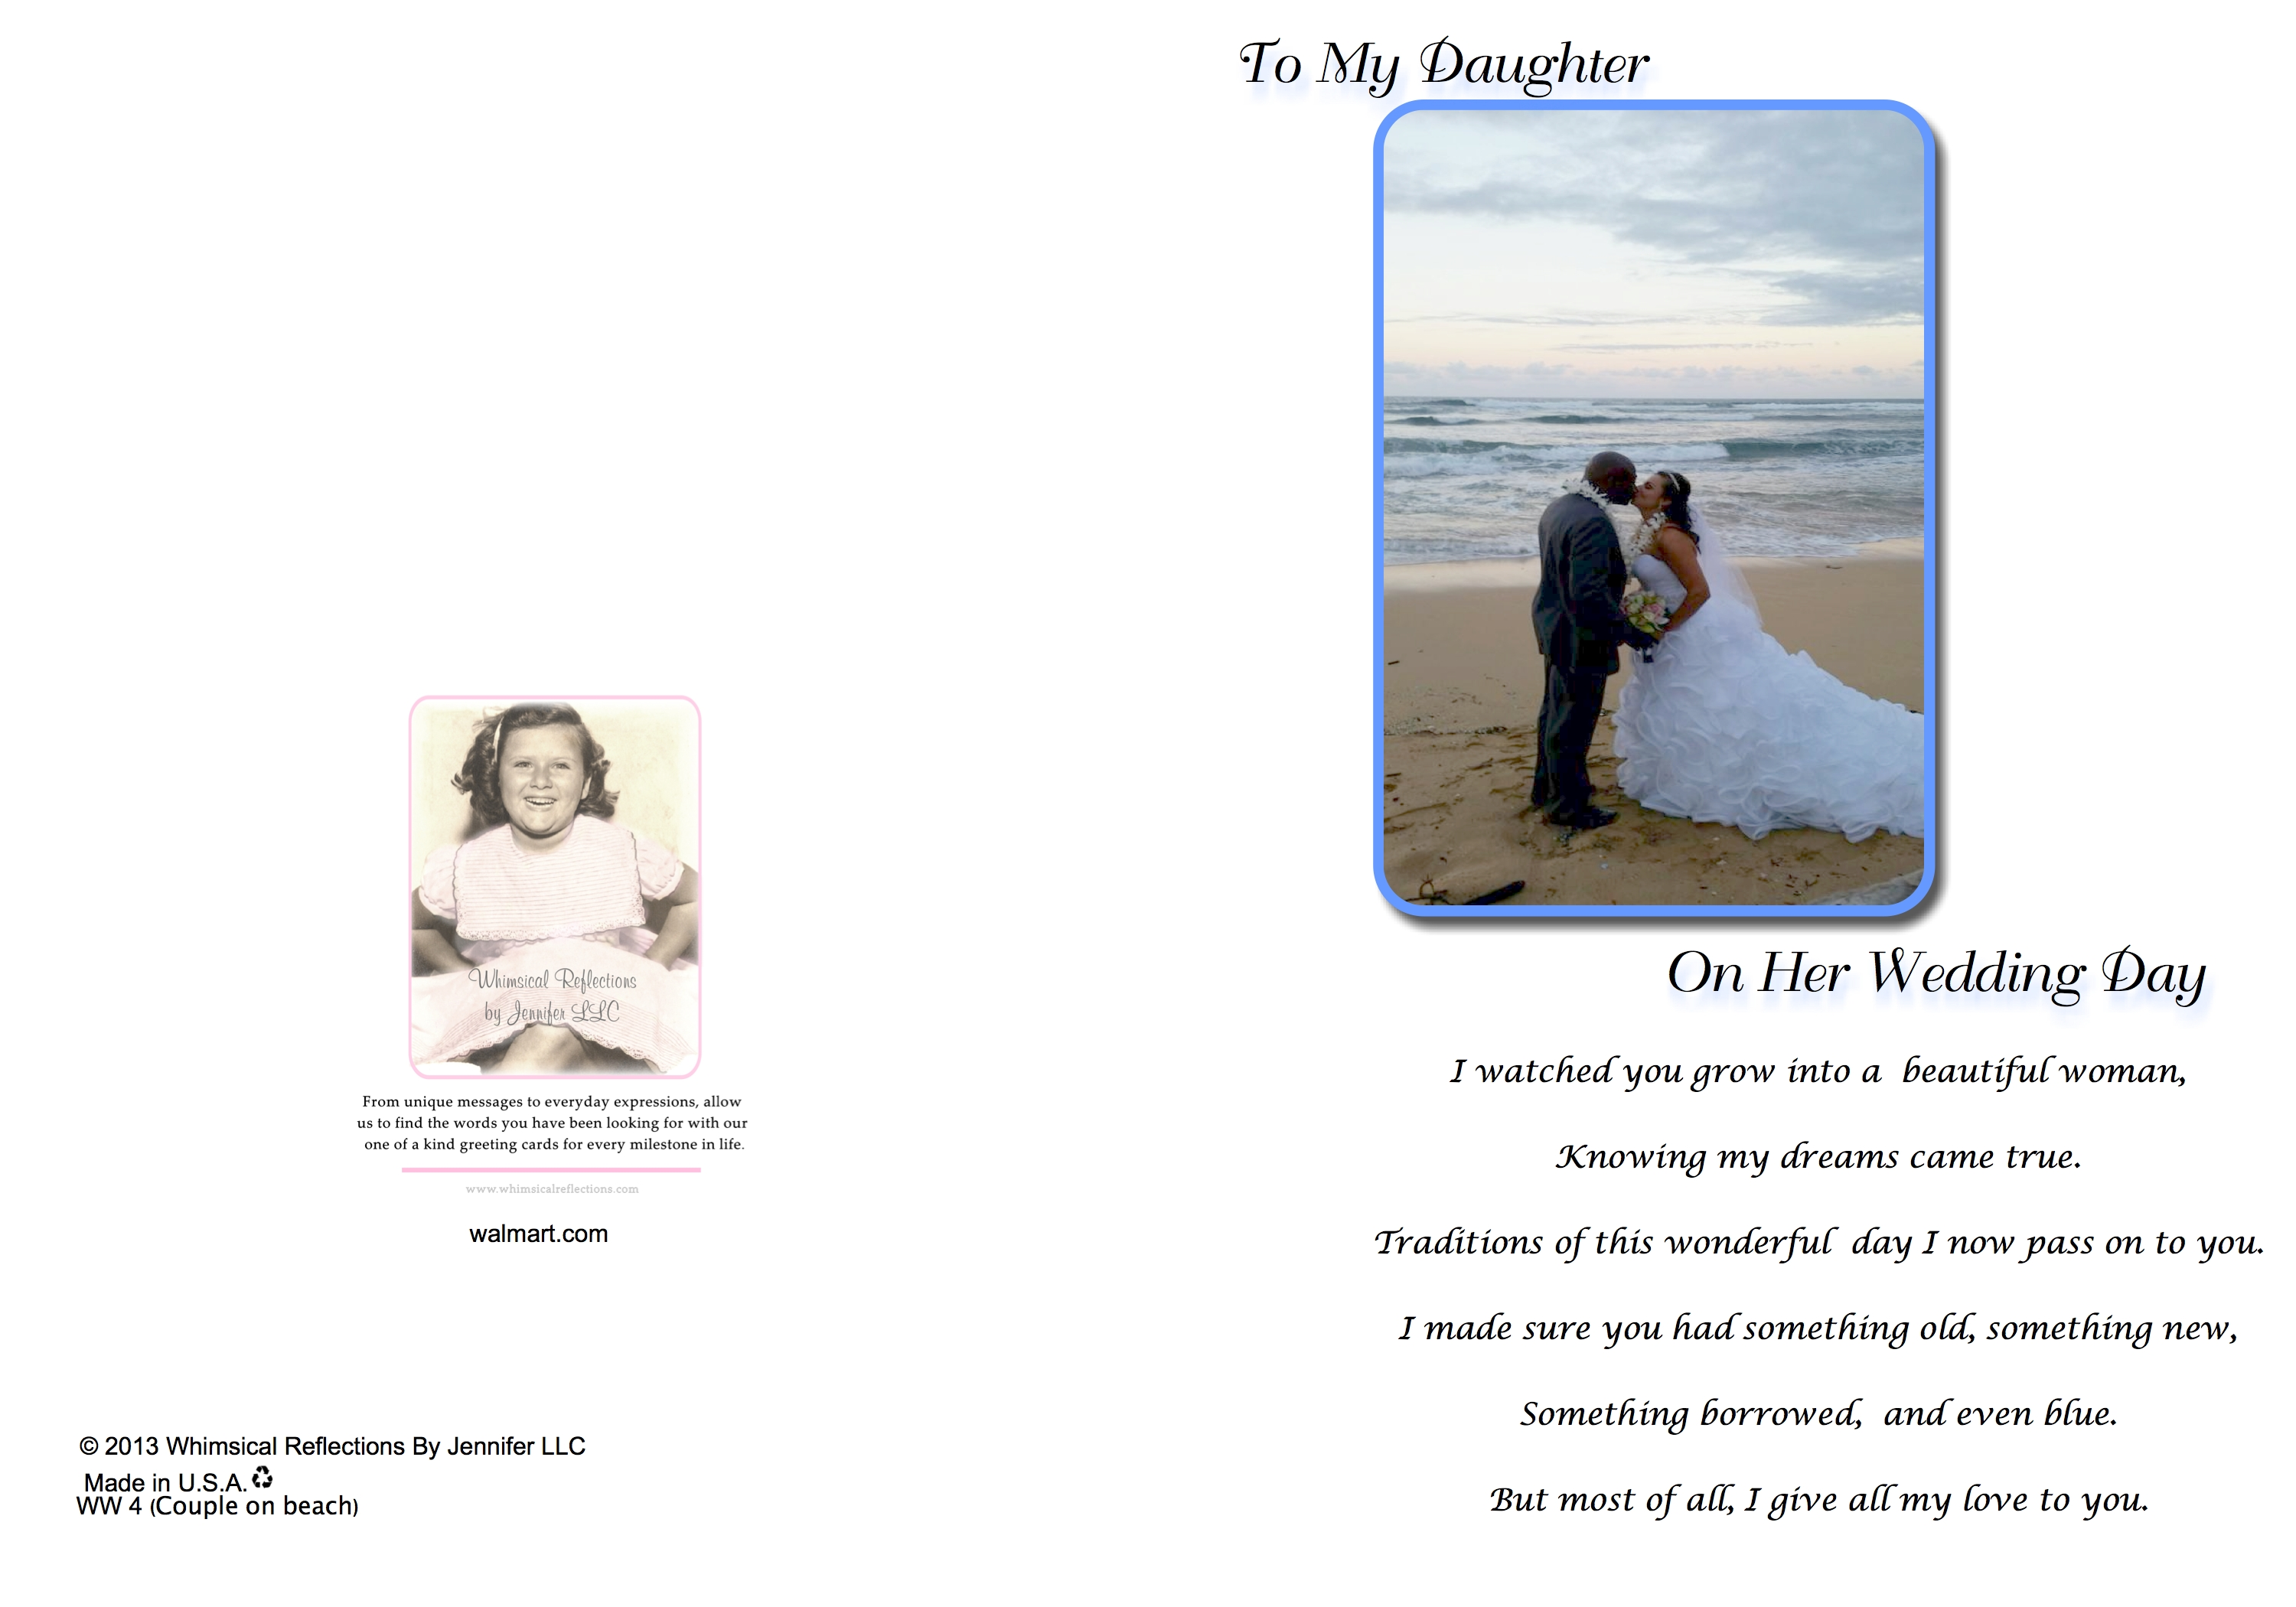 To my daughter on her wedding day couple on beach greeting card to my daughter on her wedding day couple on beach greeting card single 5x7 card with white envelope whimsical reflections by jennifer walmart m4hsunfo